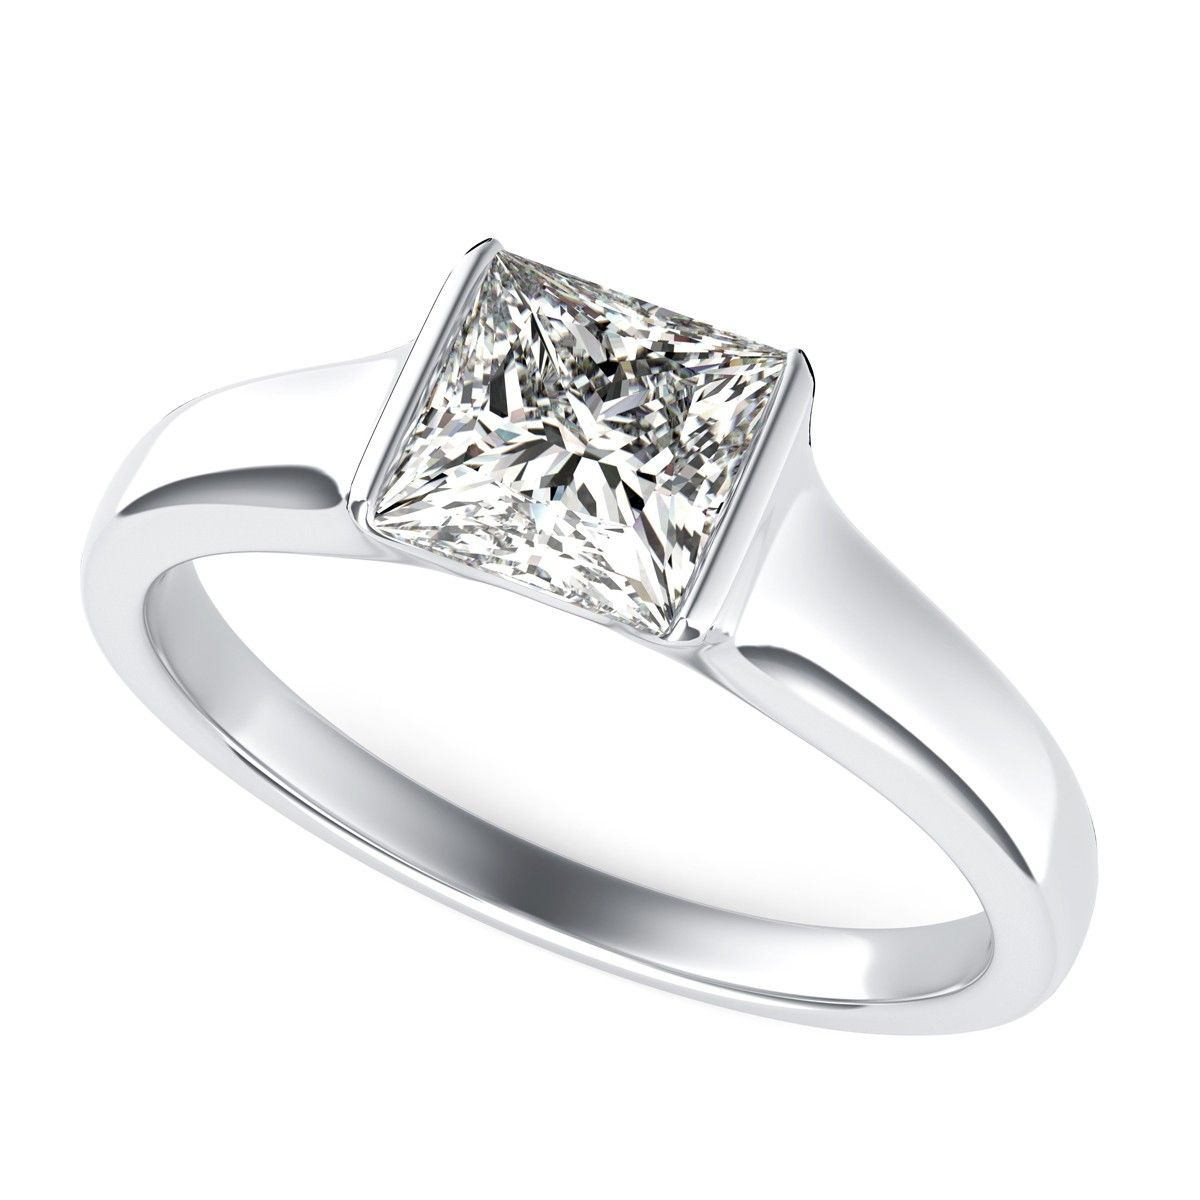 Tension Set Engagement Ring With Princess Cut Diamond By